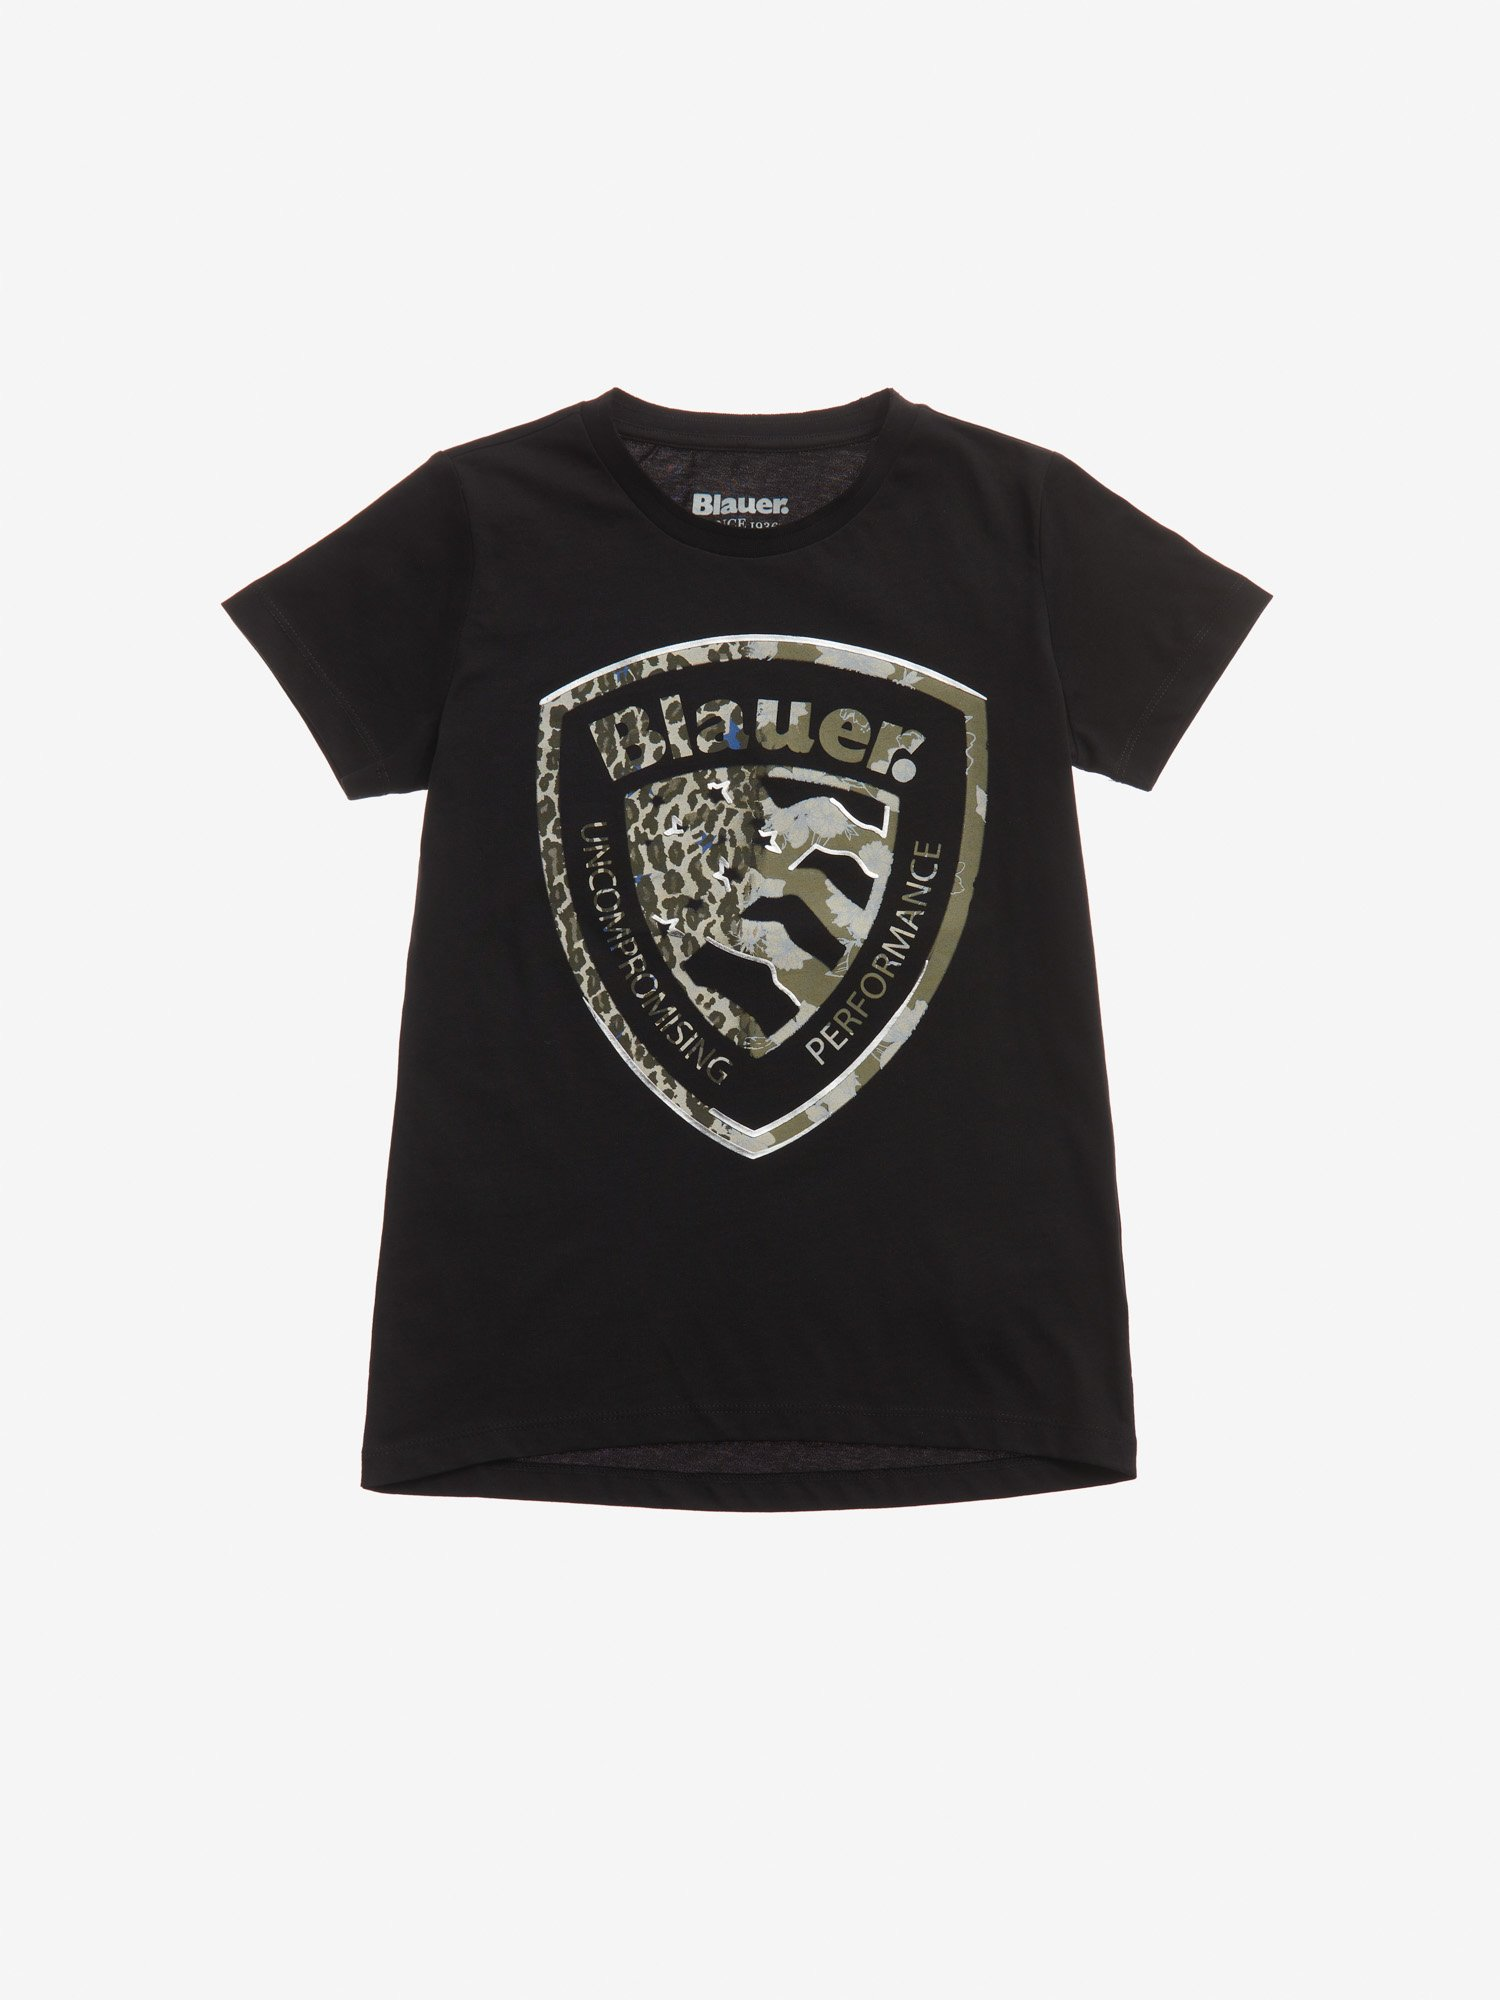 T-SHIRT WITH 3D FASHION SHIELD - Blauer